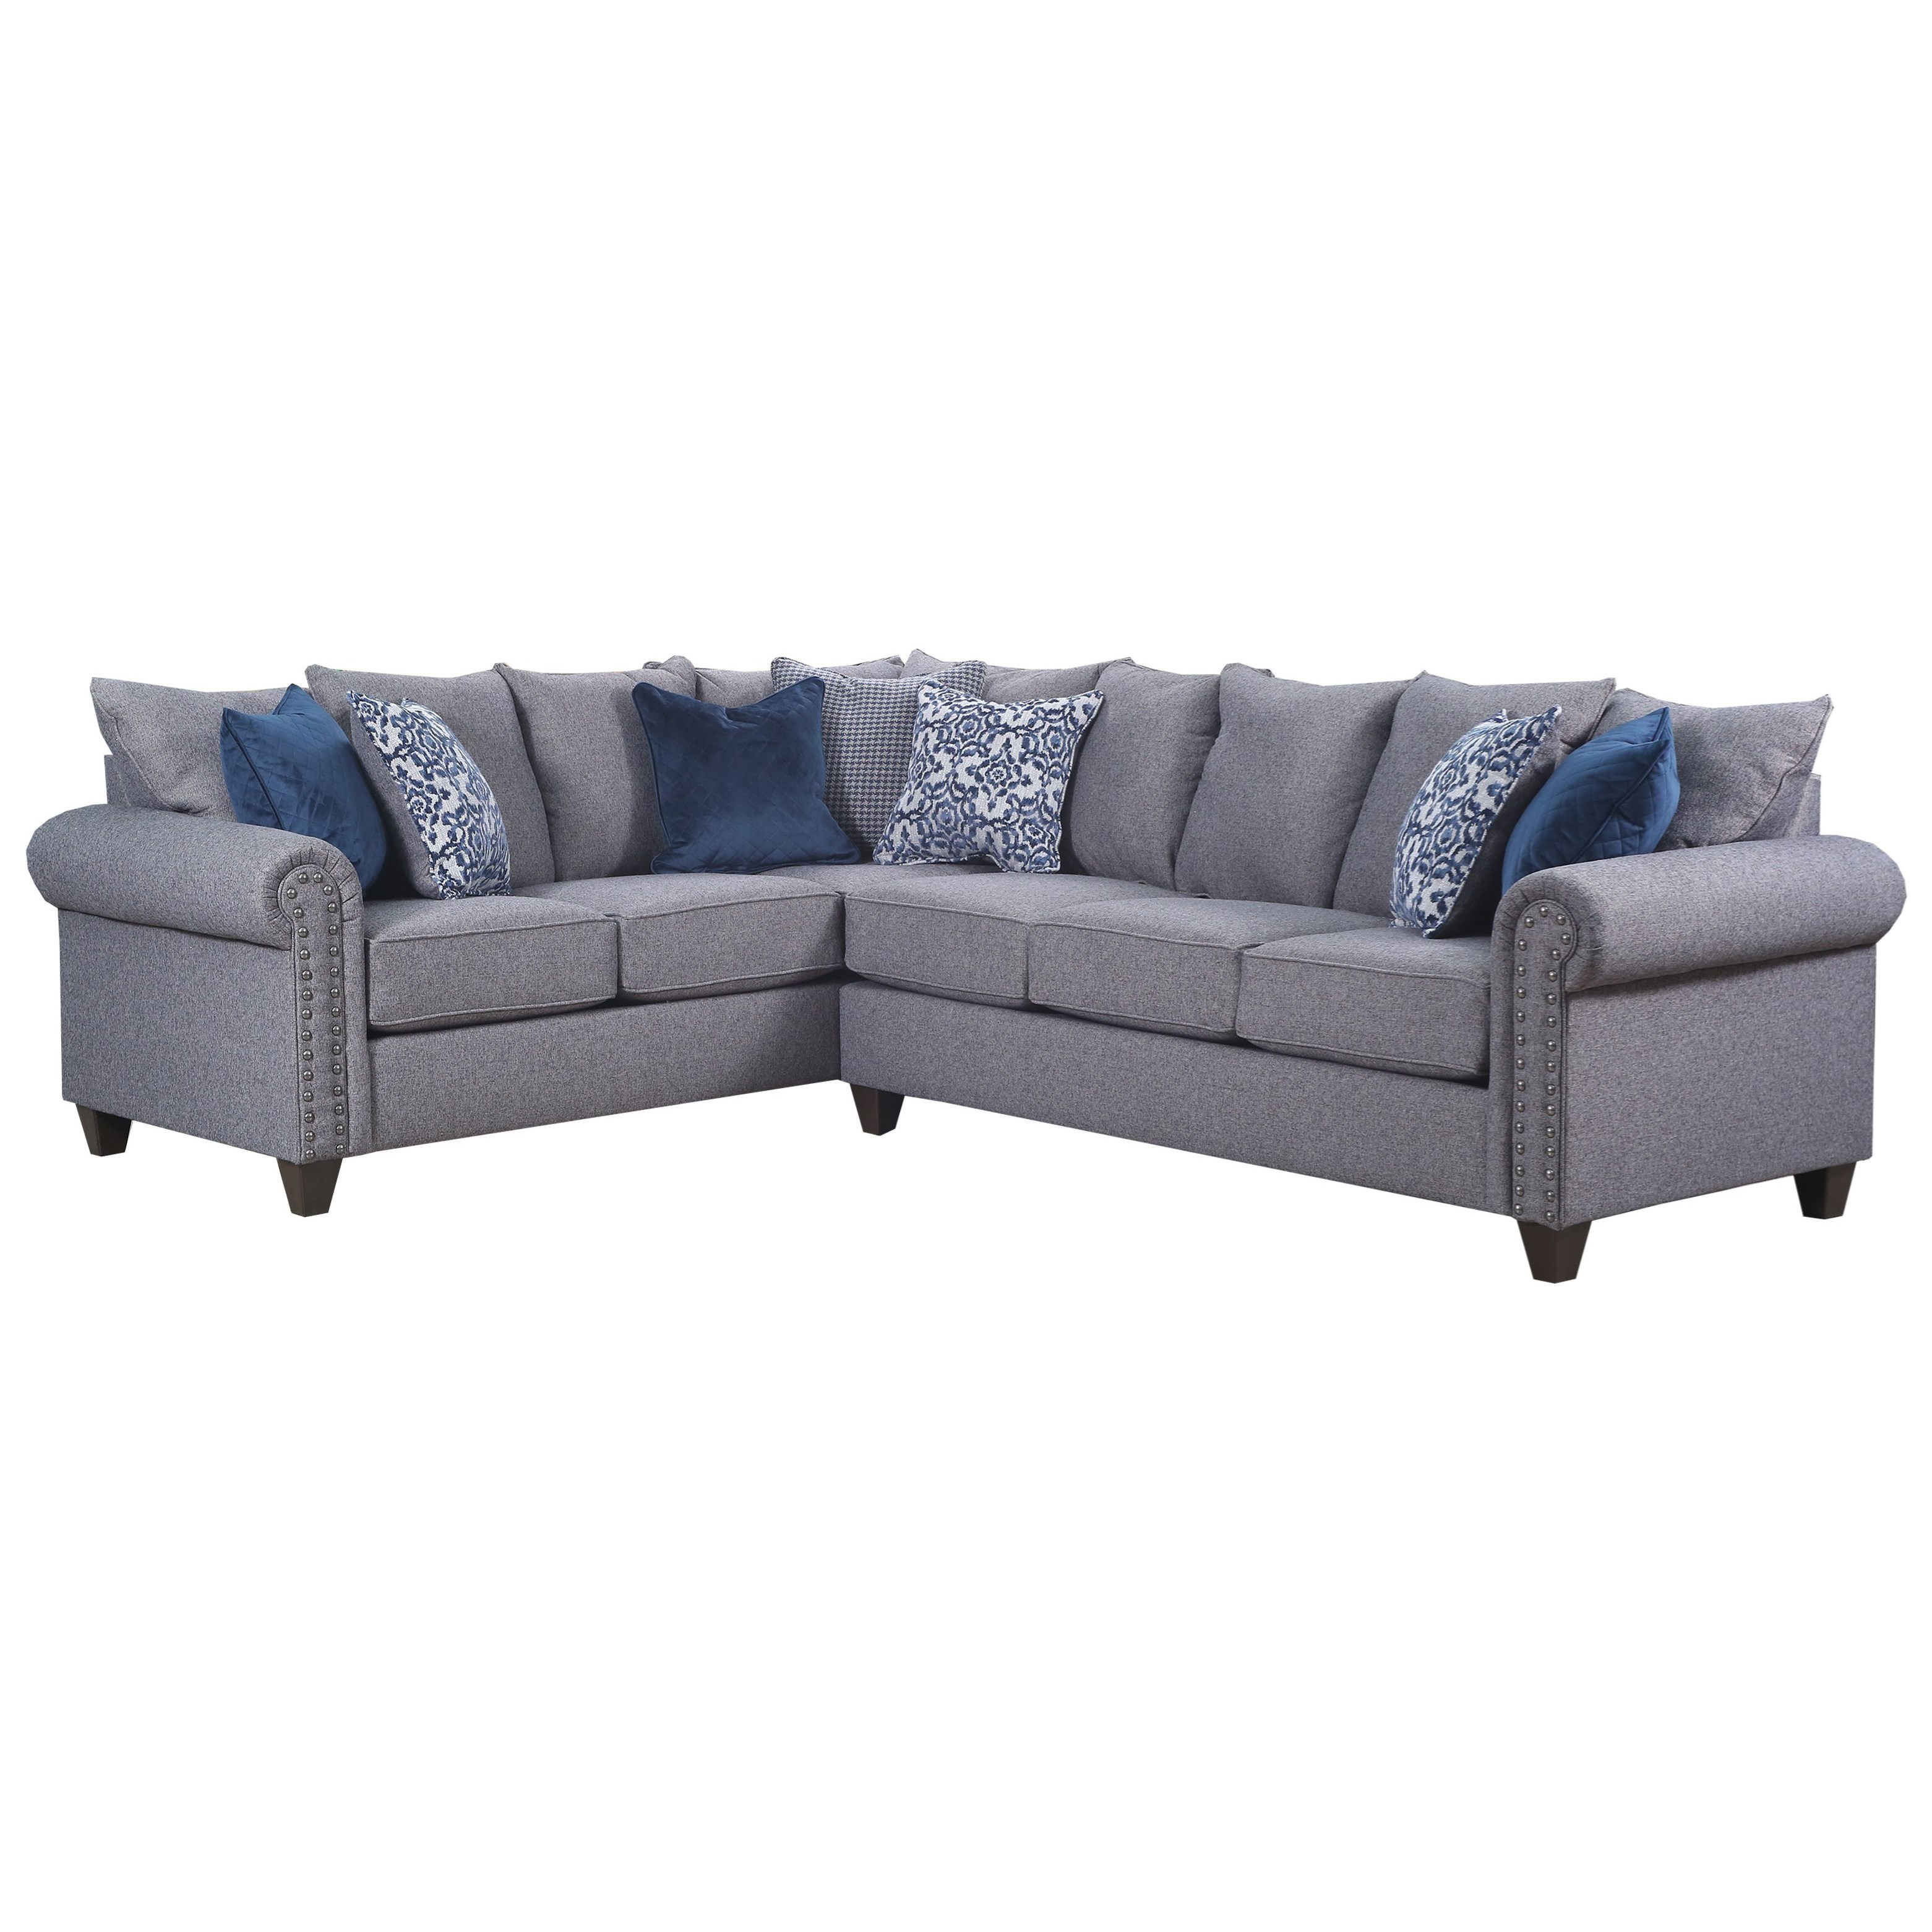 9175BR 5 Seat Sectional by United Furniture Industries at Dream Home Interiors